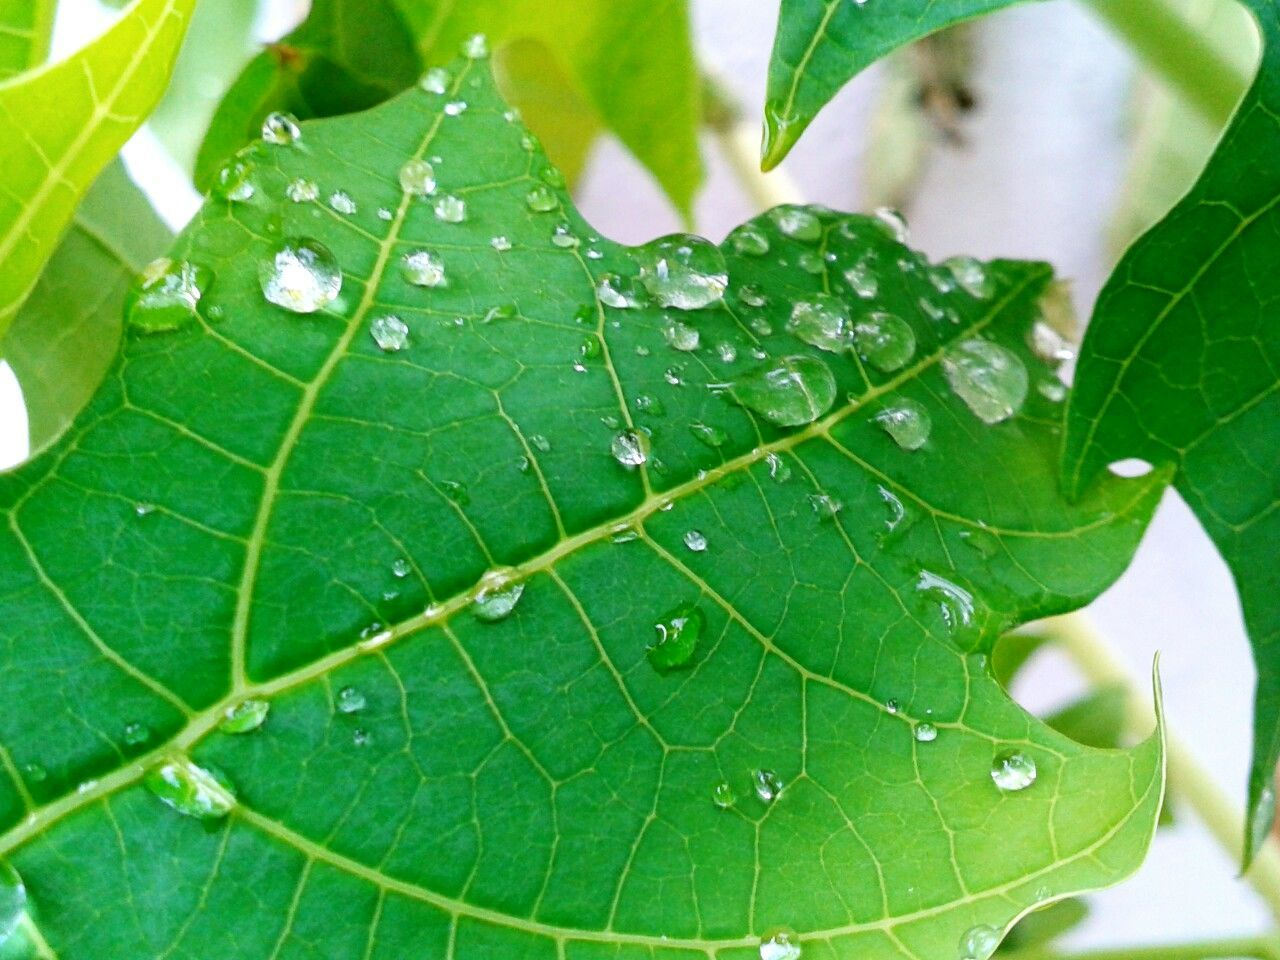 Beauty In Nature Close-up Day Drop Fragility Freshness Green Color Growth Leaf Nature No People Outdoors Plant Water Wet Rain Drops Rain Drops On Leaves